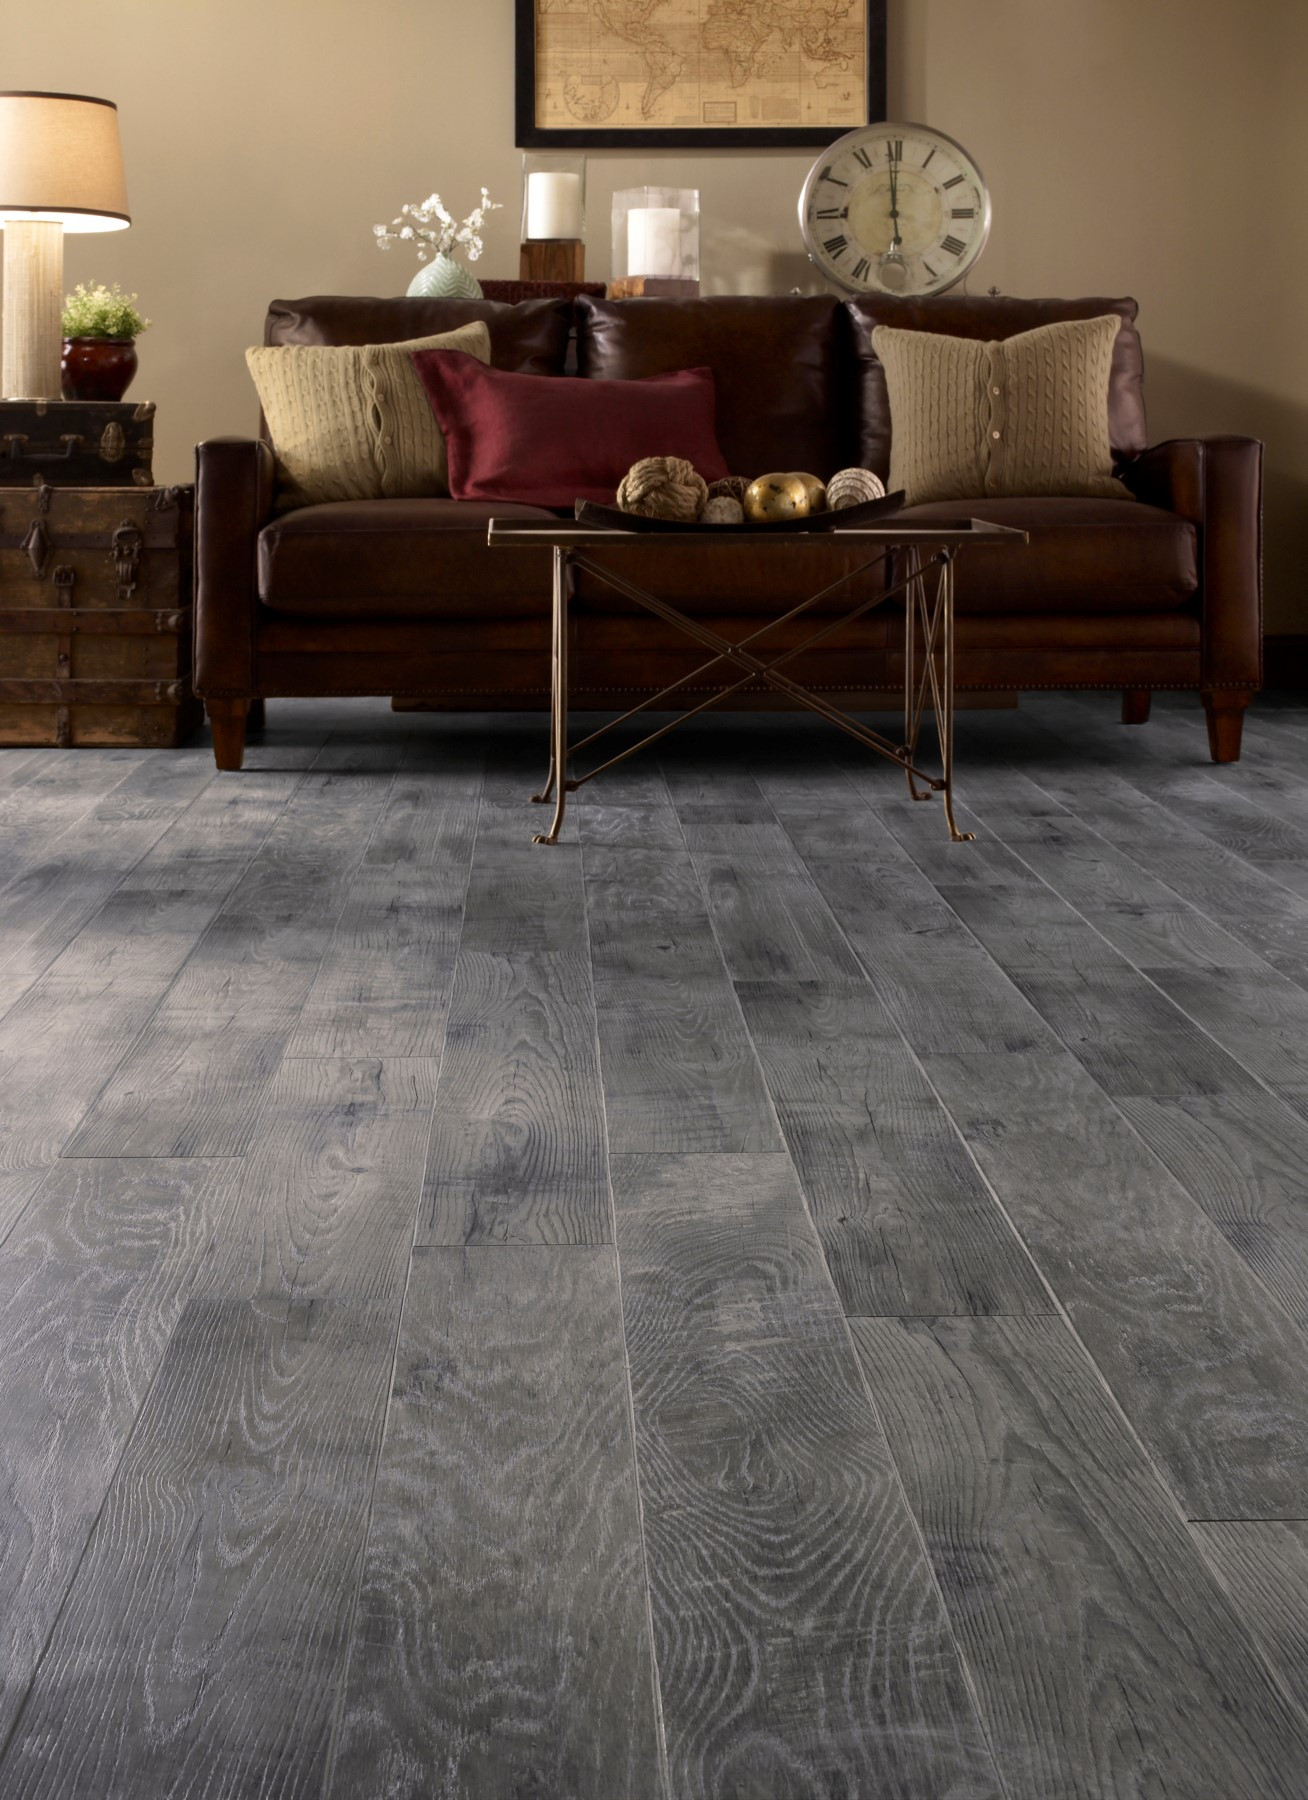 pvc hardwood flooring of new laminate flooring sports muted colors builder magazine intended for new laminate flooring sports muted colors builder magazine flooring mannington mills